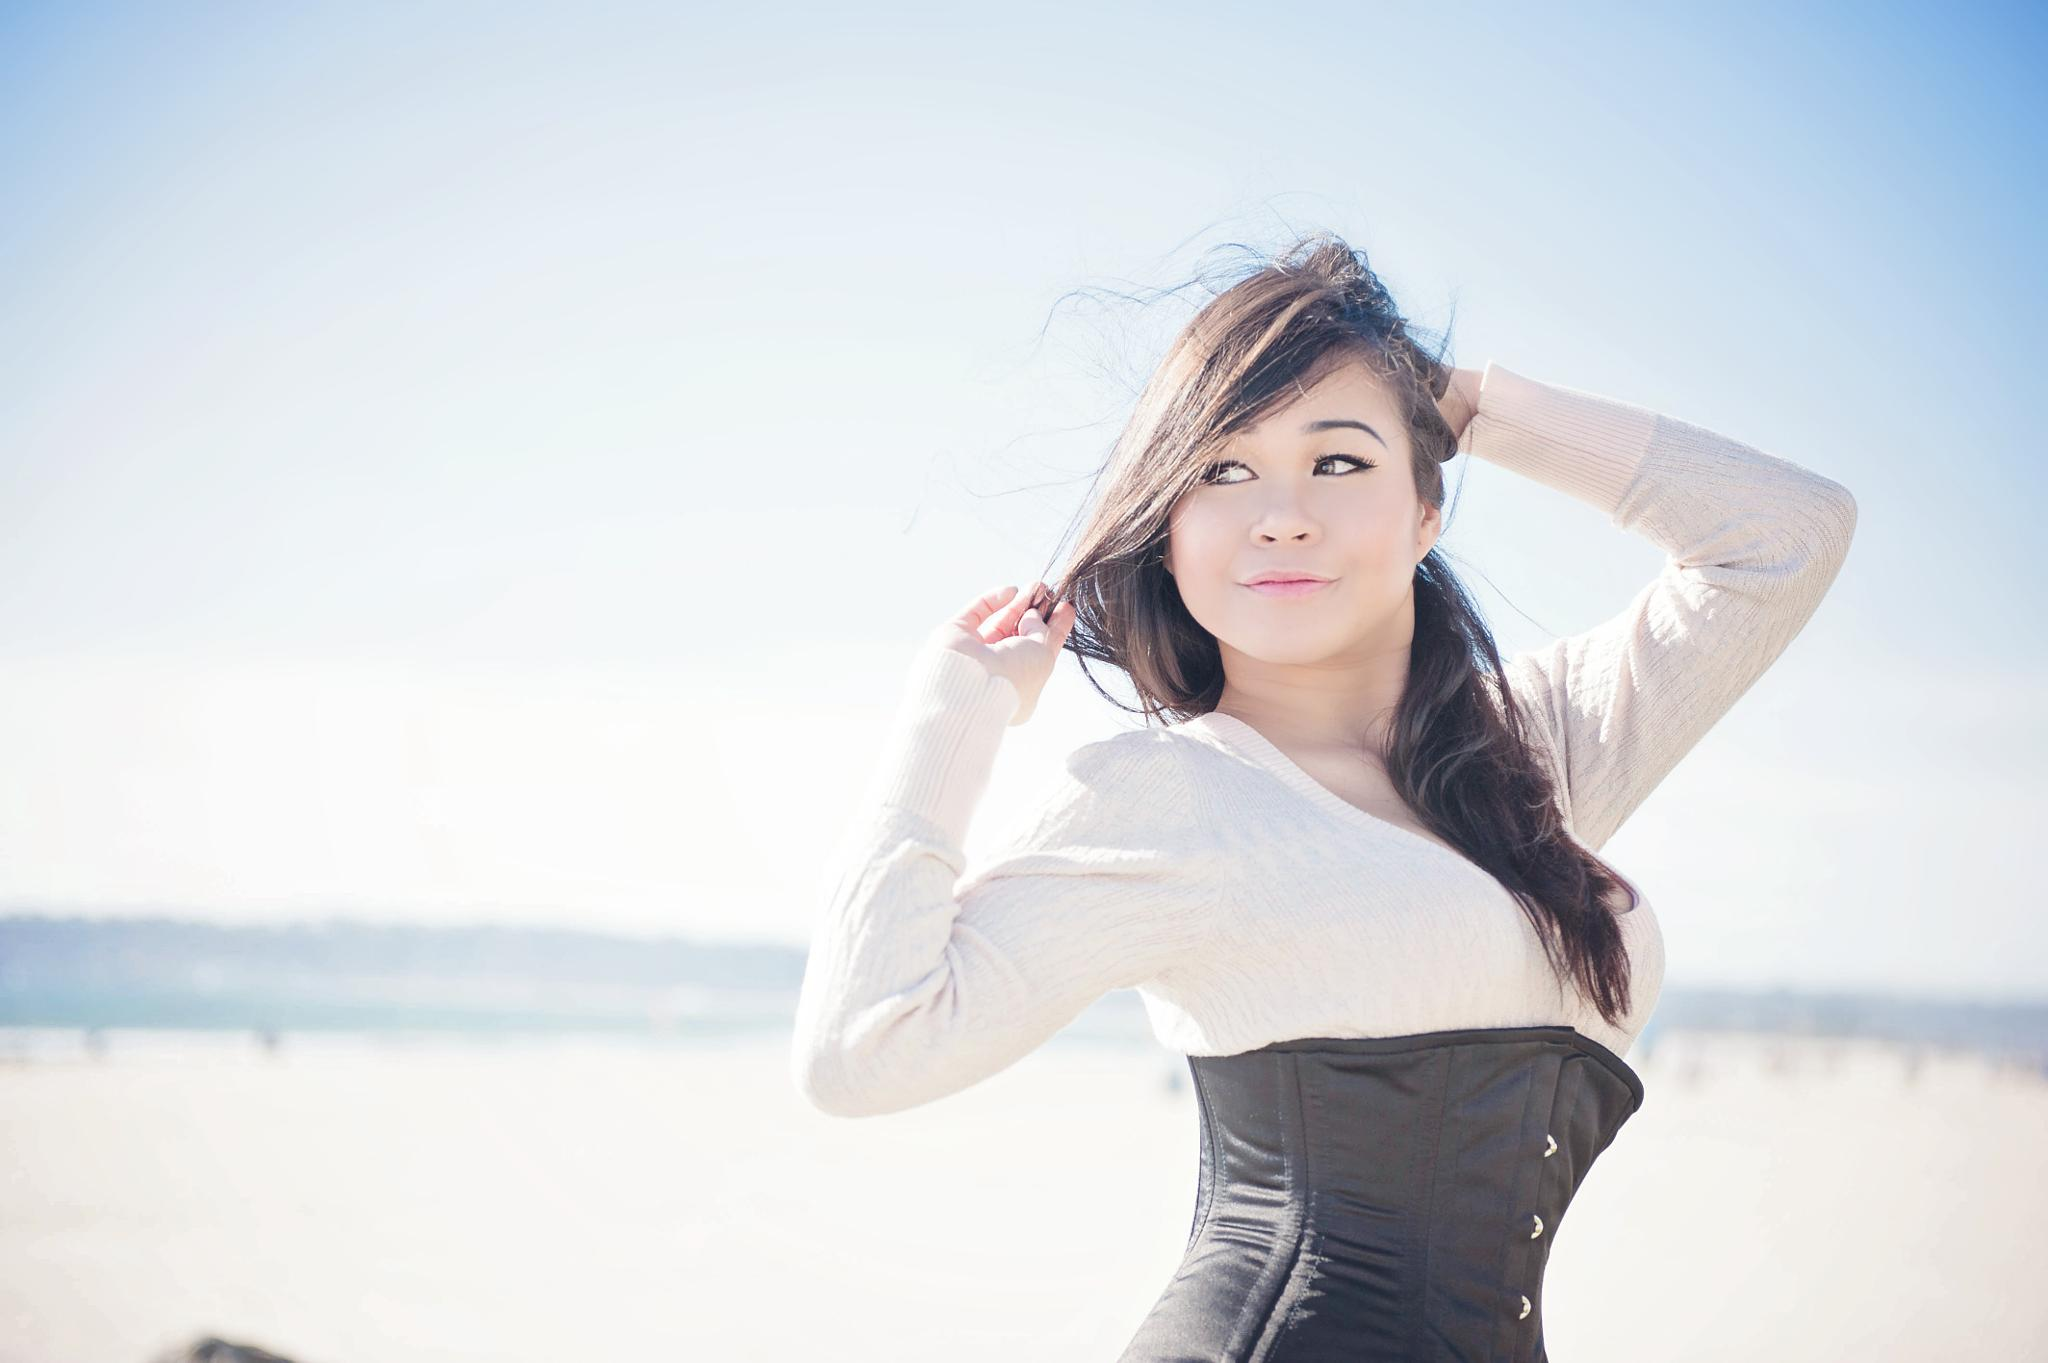 Model at the Beach in San Diego by Kim Reimer